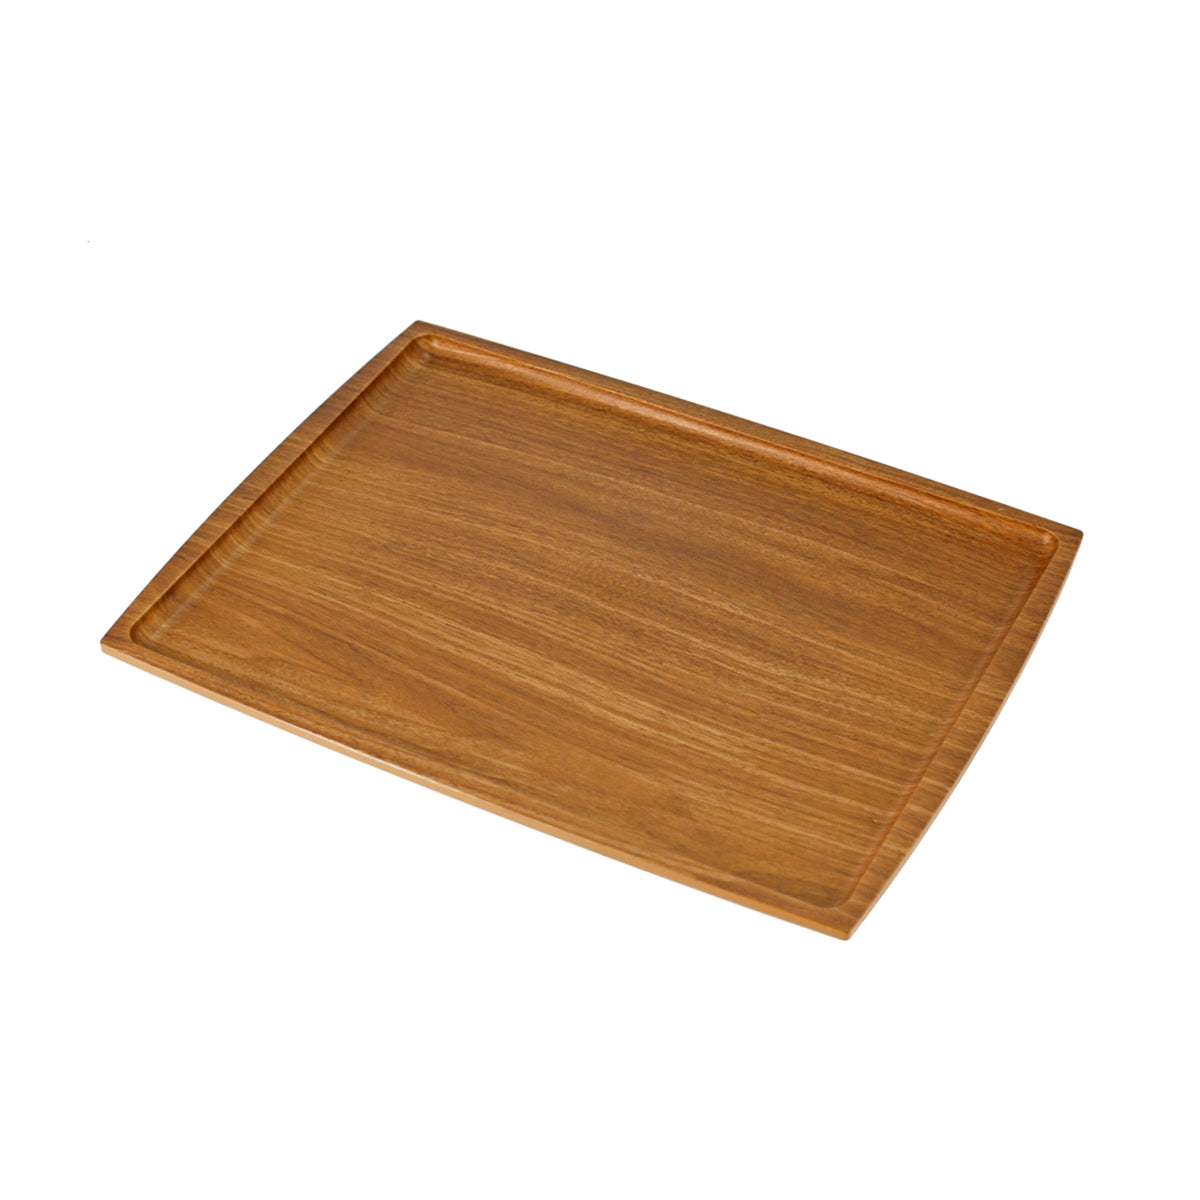 "Non-slip Rectangular Tray with Wooden Pattern 14.17"" x 10.63"""